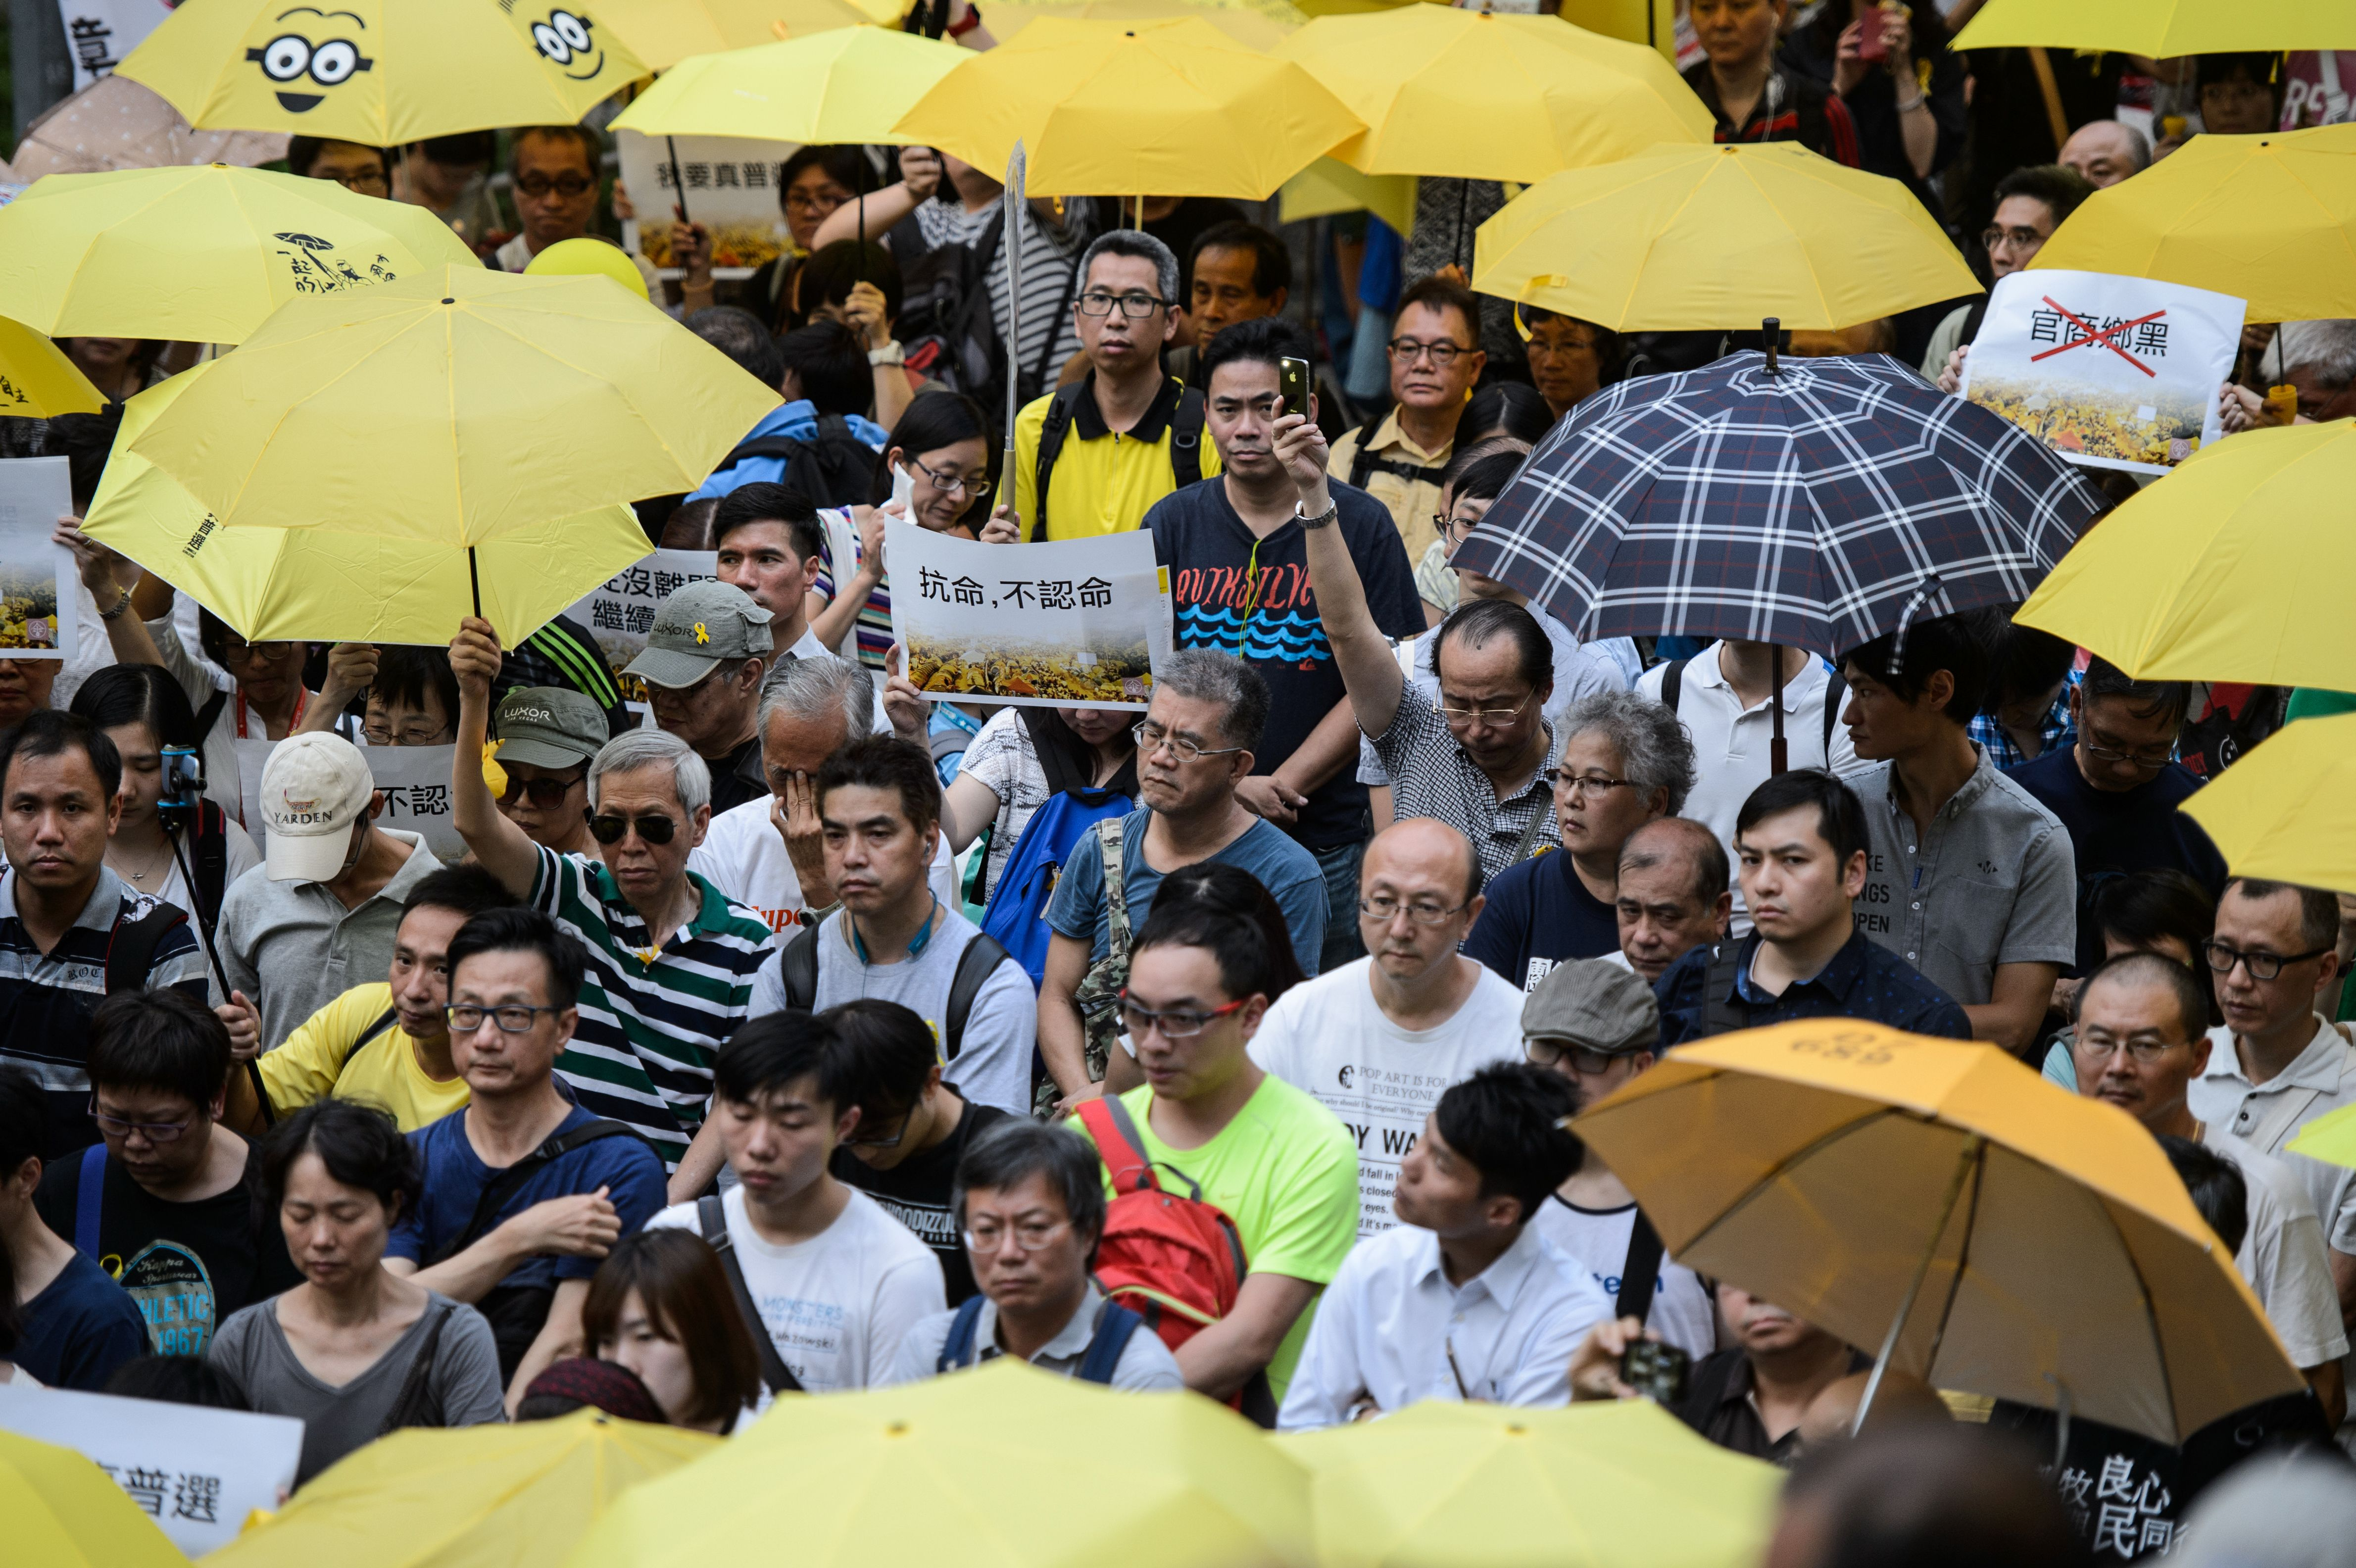 Activists in 2016 holding yellow umbrellas, a symbol of the pro-democracy movement after 2014's Umbrella Revolution.